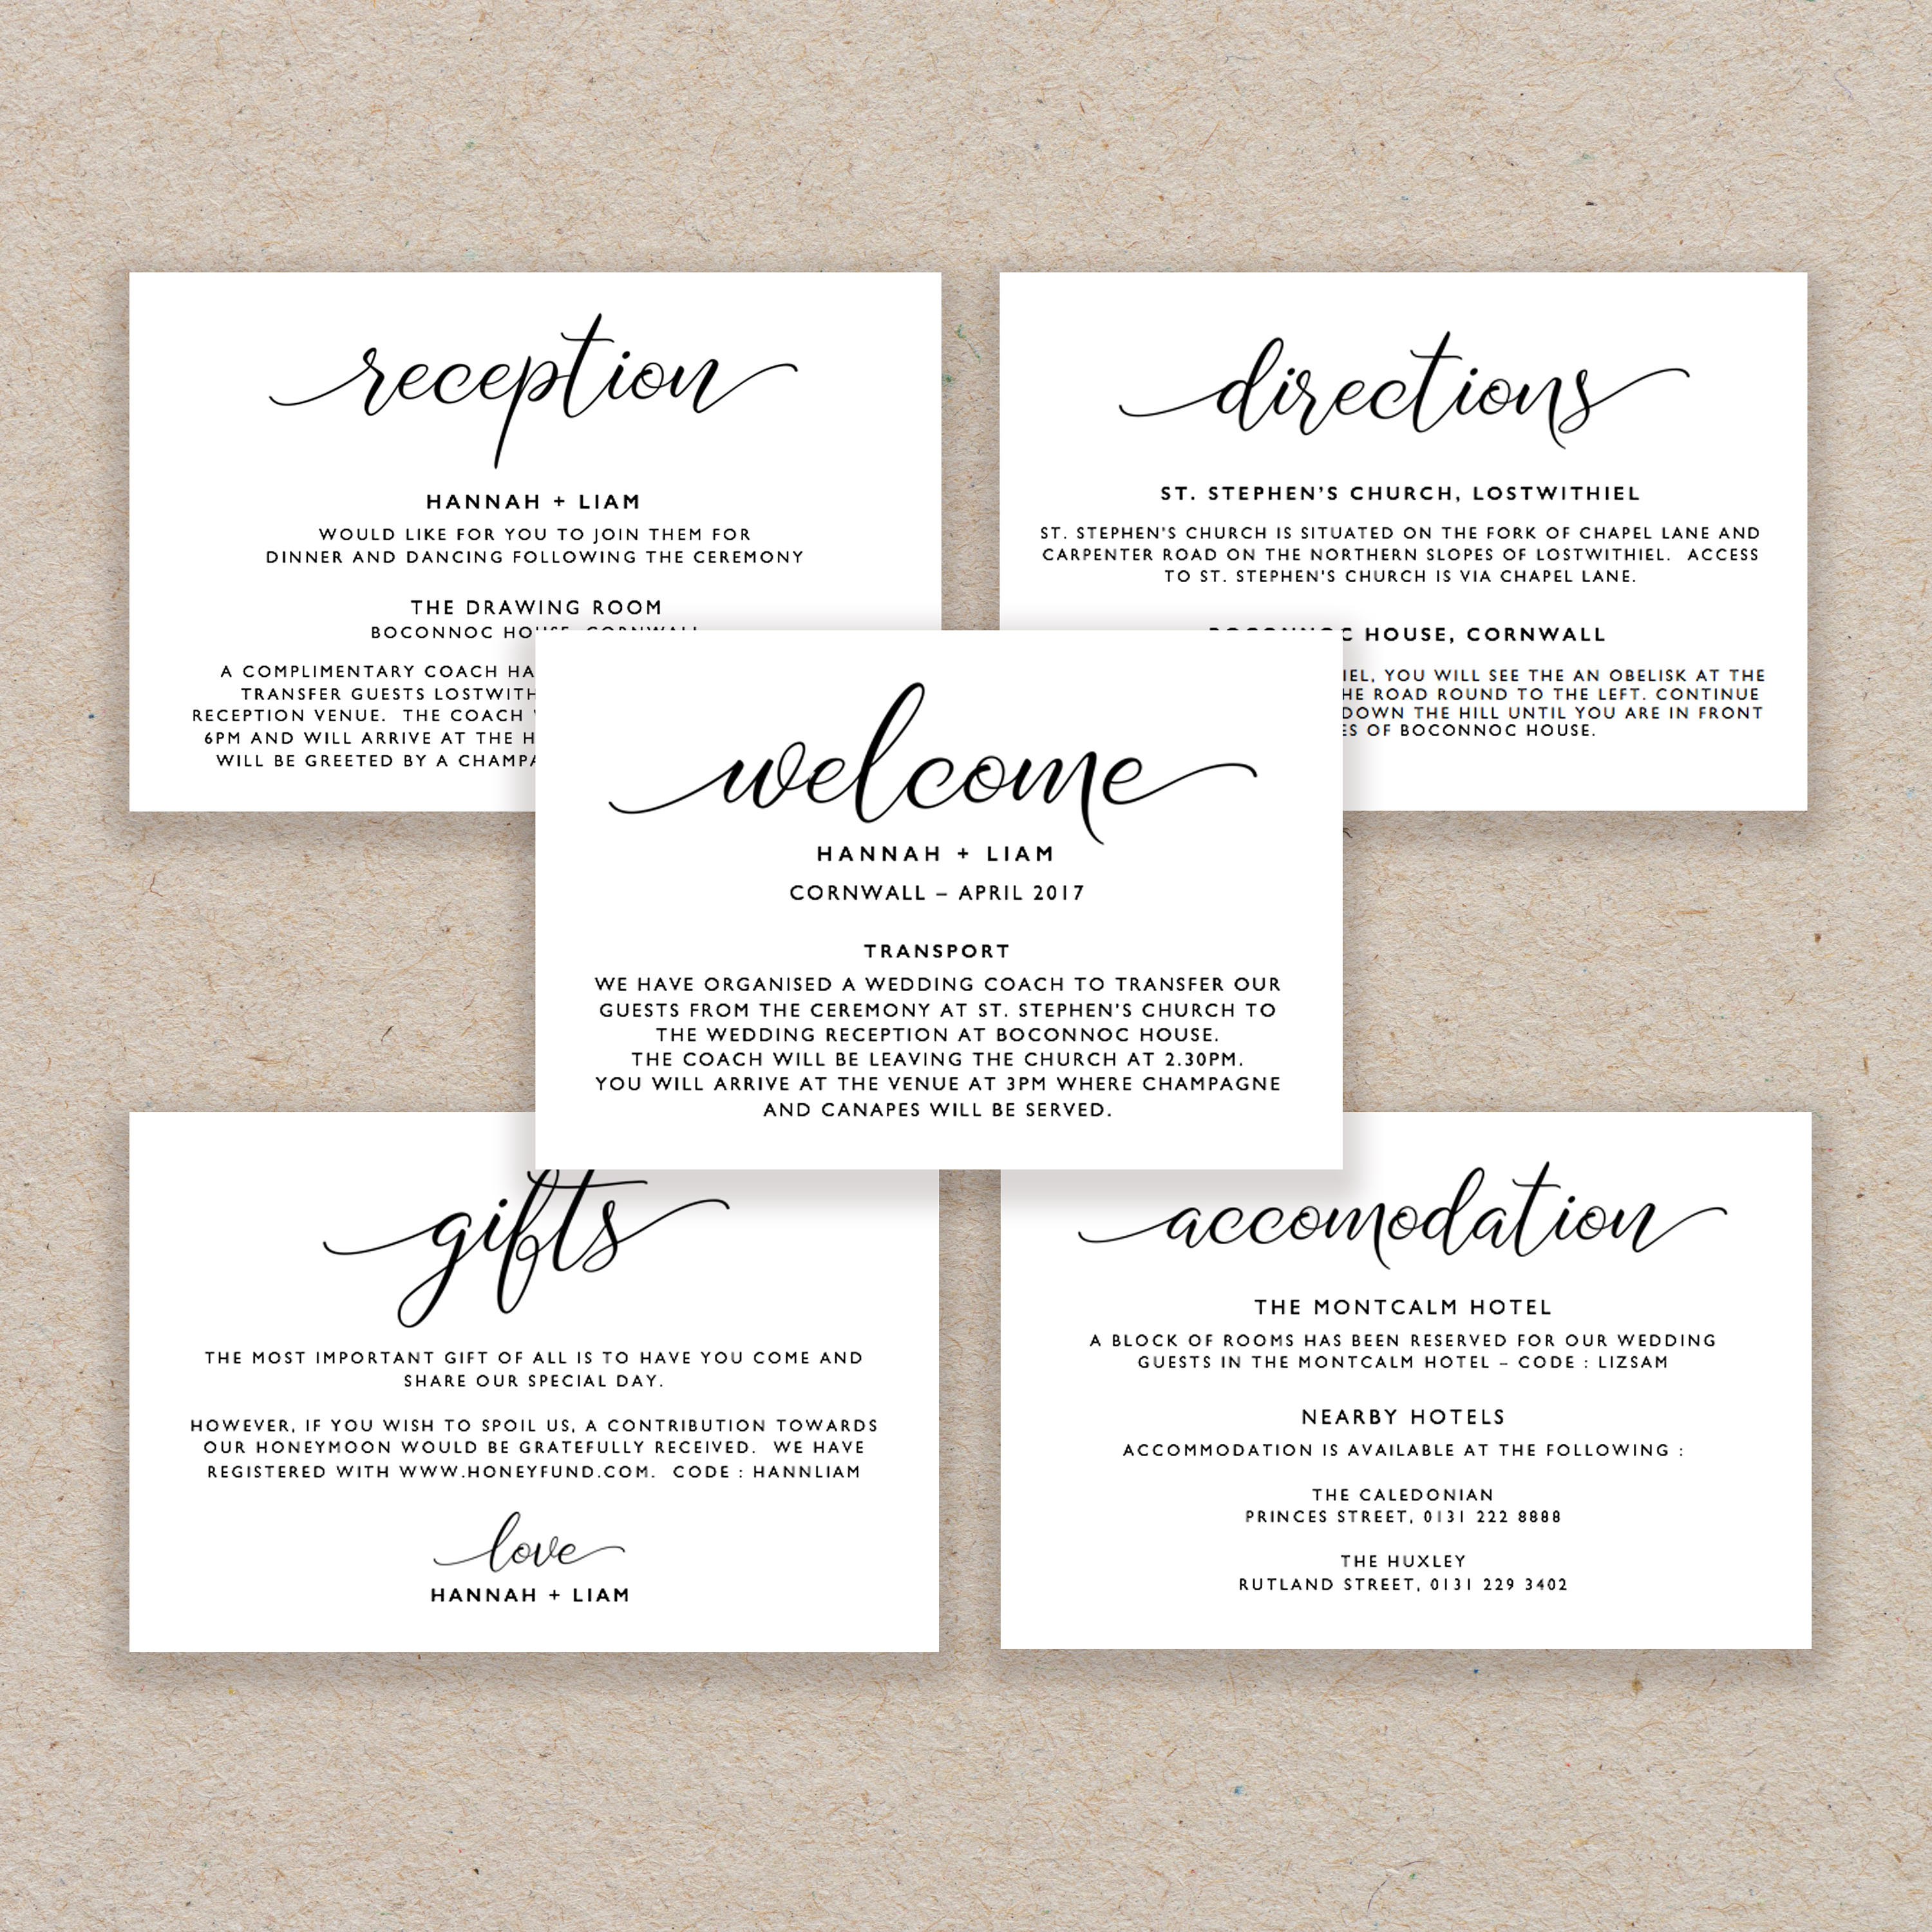 50: Acmodation Cards For Wedding Invitations At Websimilar.org